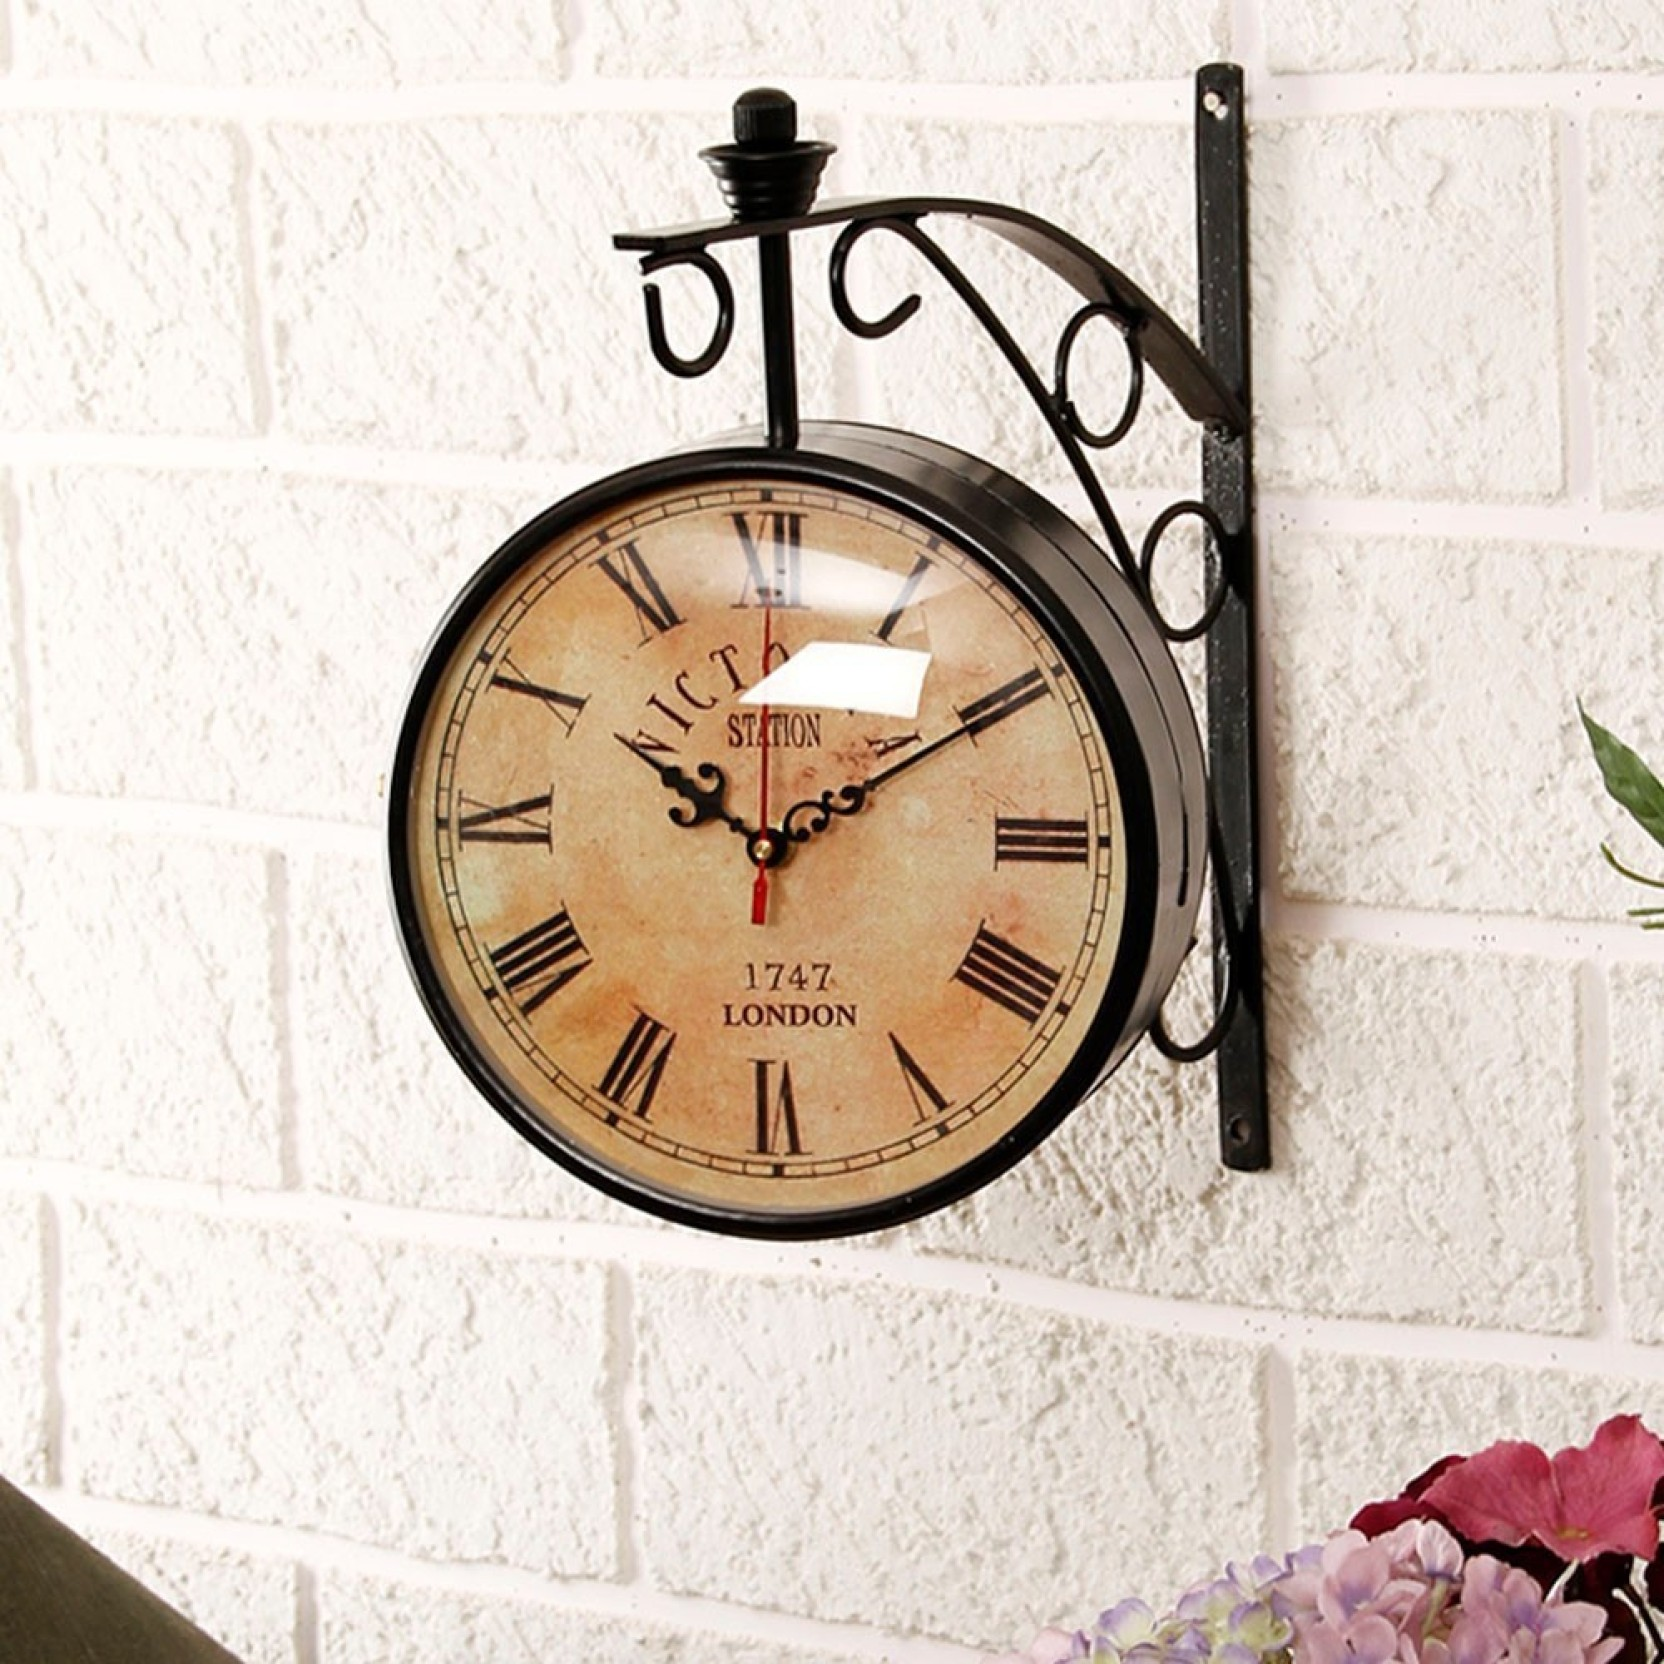 Double sided wall clock unravel india analog wall clock for Traditional wall clocks india